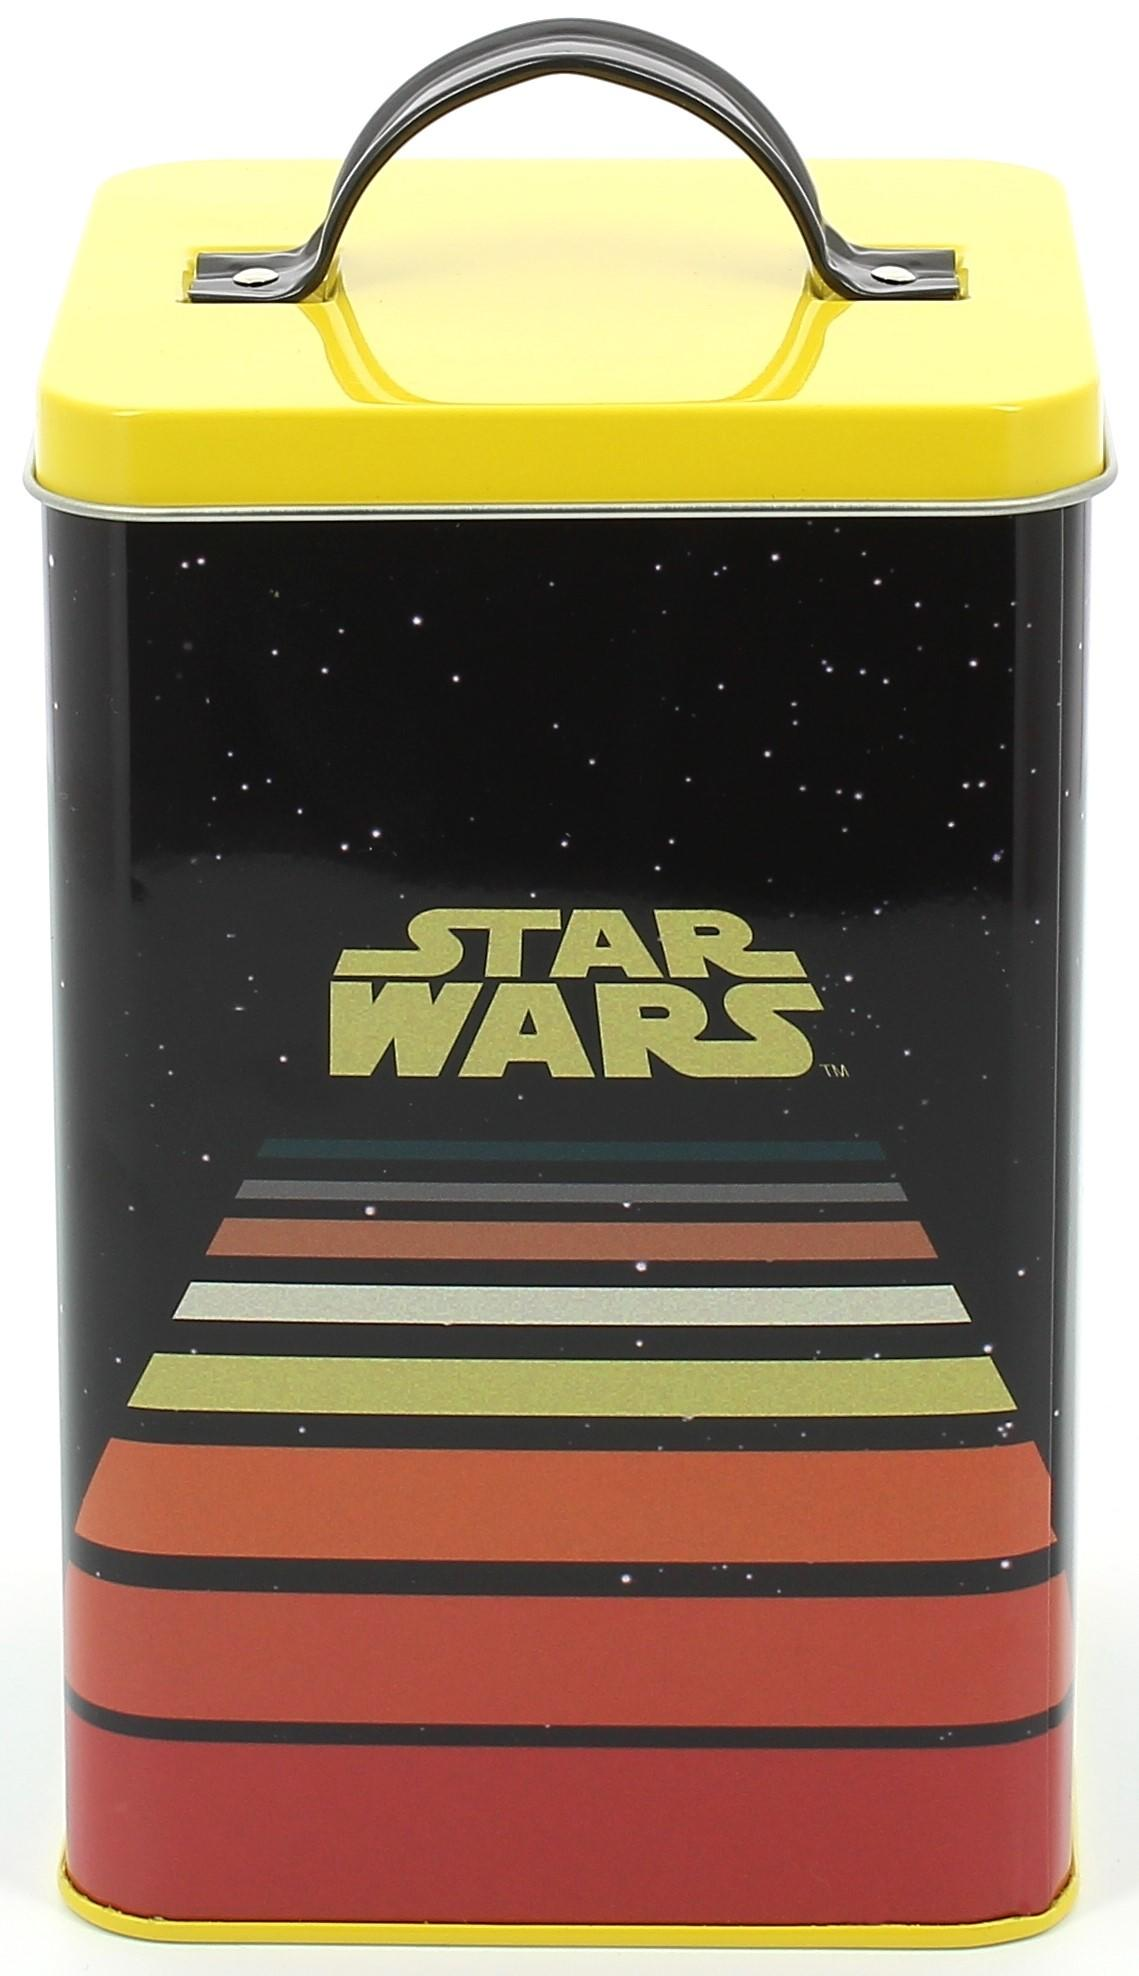 Star Wars Ep9 Retro Vehicle Storage Tin Set